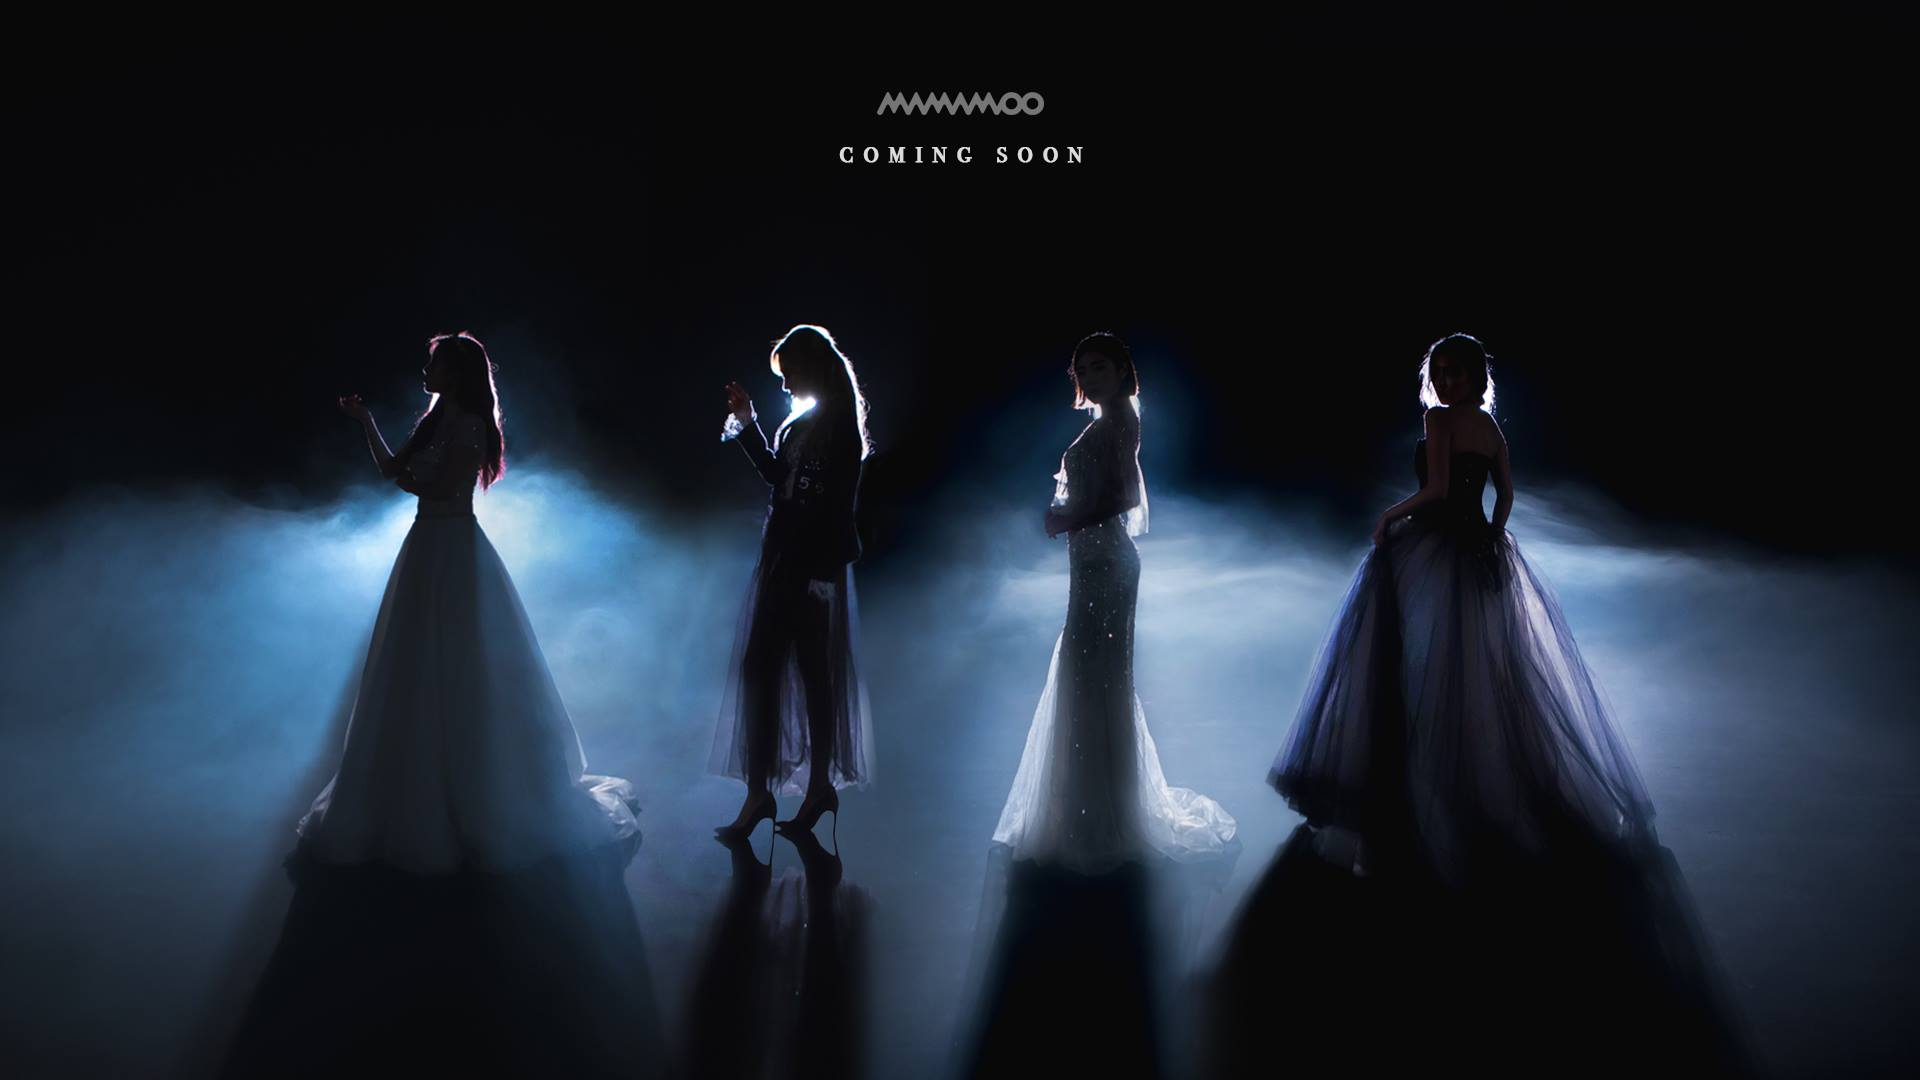 Mamamoo Aesthetic Wallpapers Wallpaper Cave